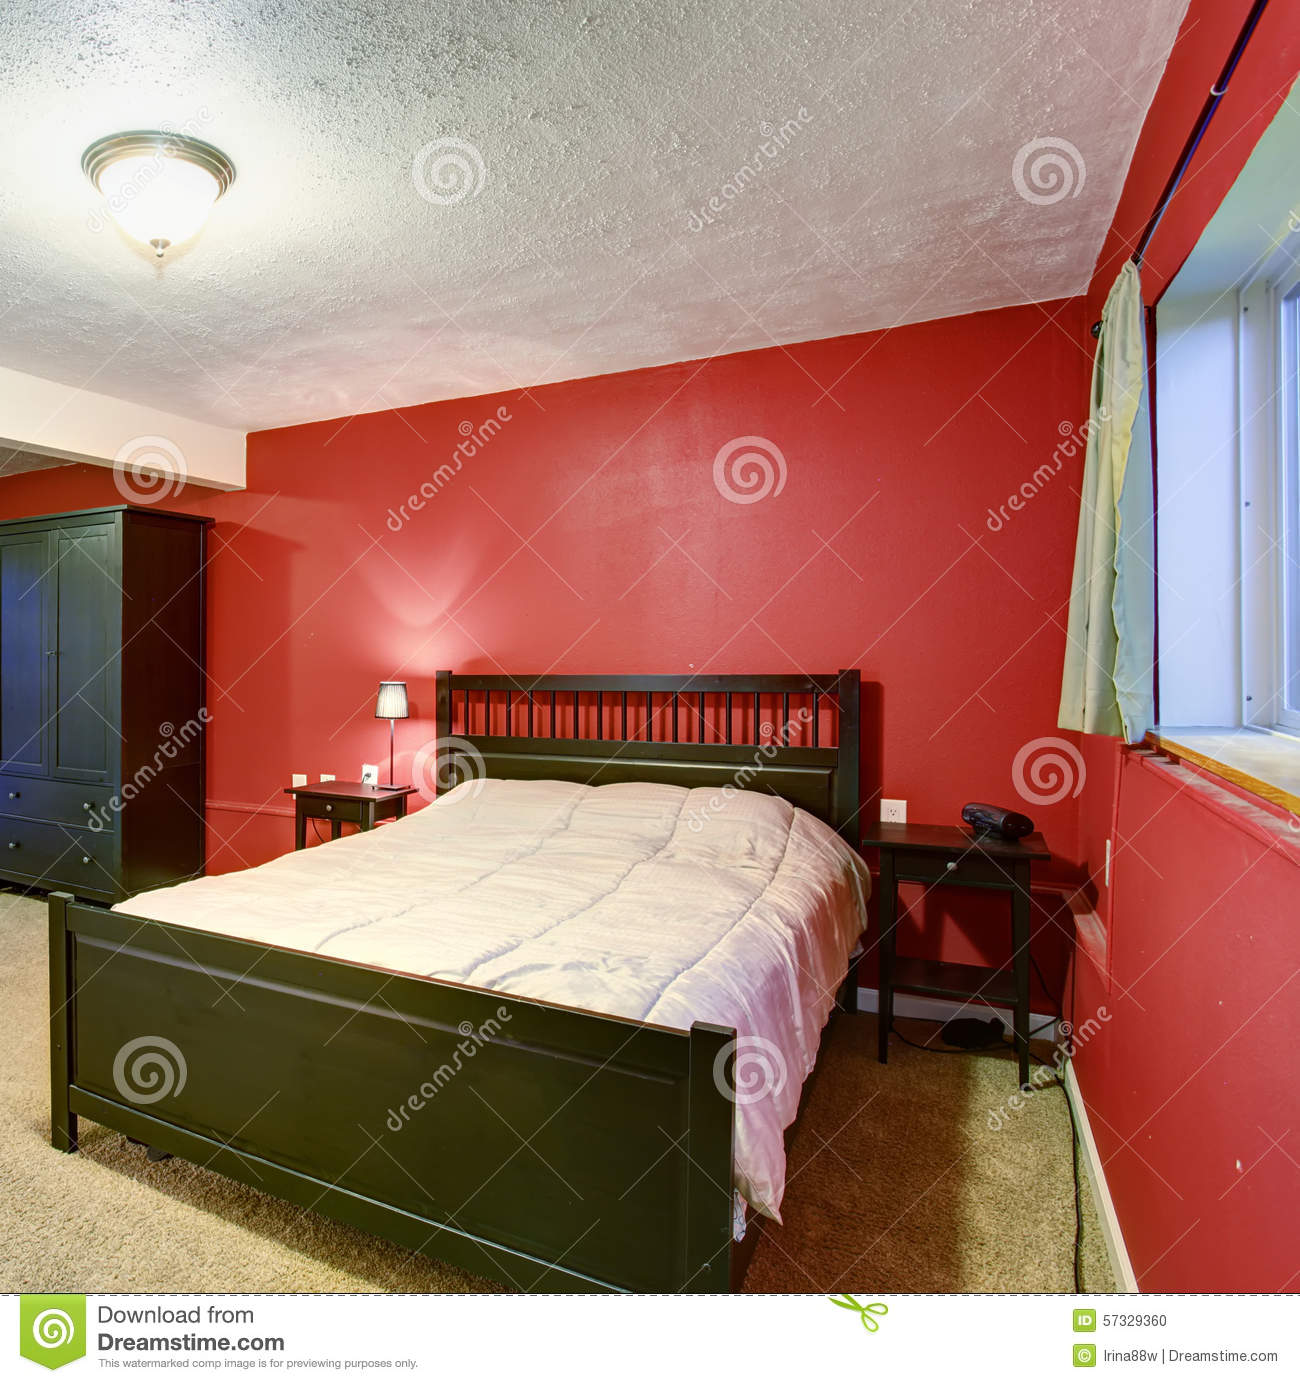 Bedroom With Red Walls Black Color Furniture And Beige Blanket Stock